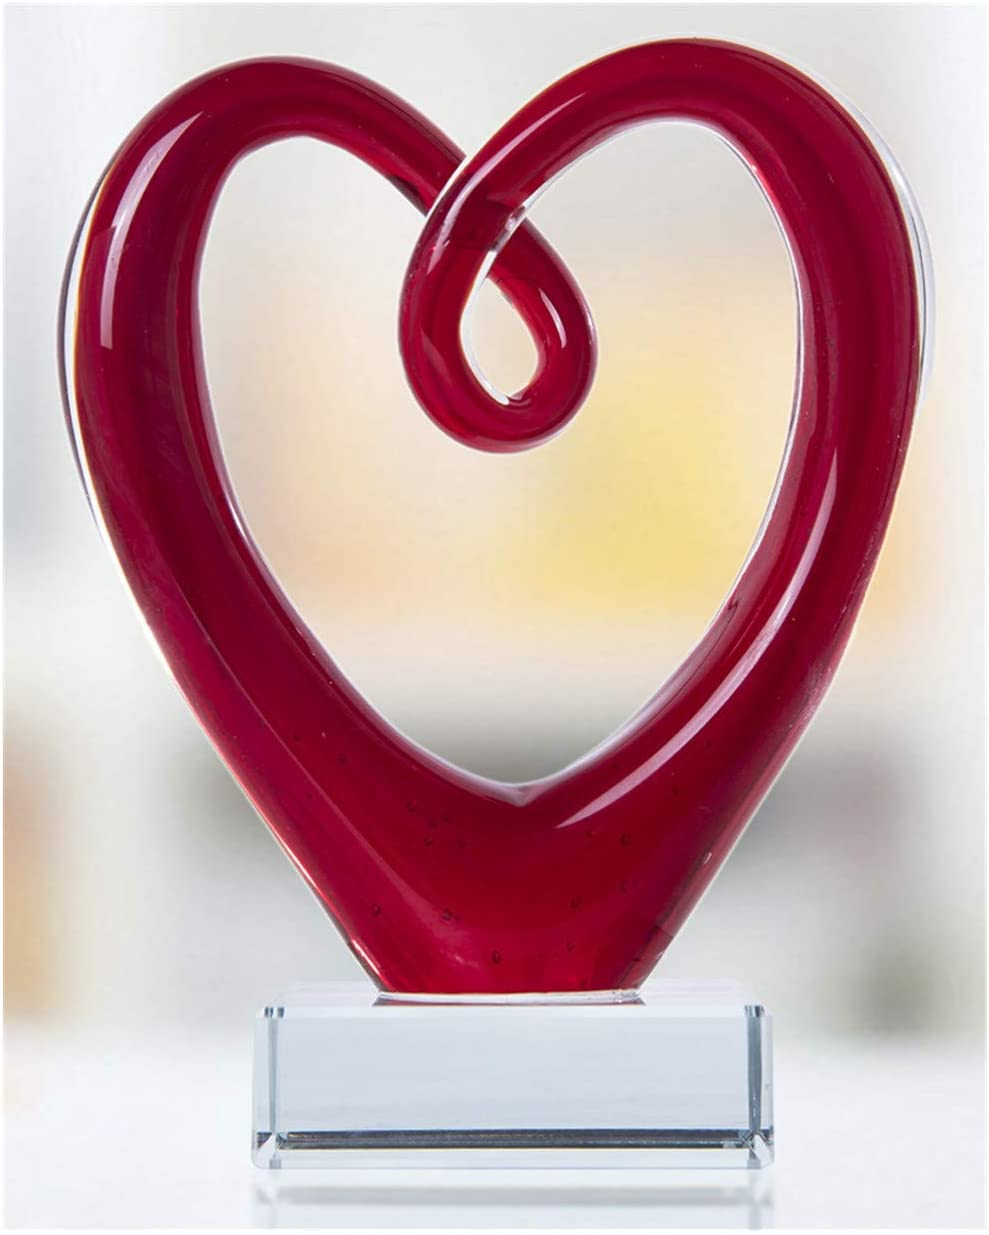 QF Large Art Glass Heart Sculpture Centerpiece Party Home Decoration Gift Murano Style